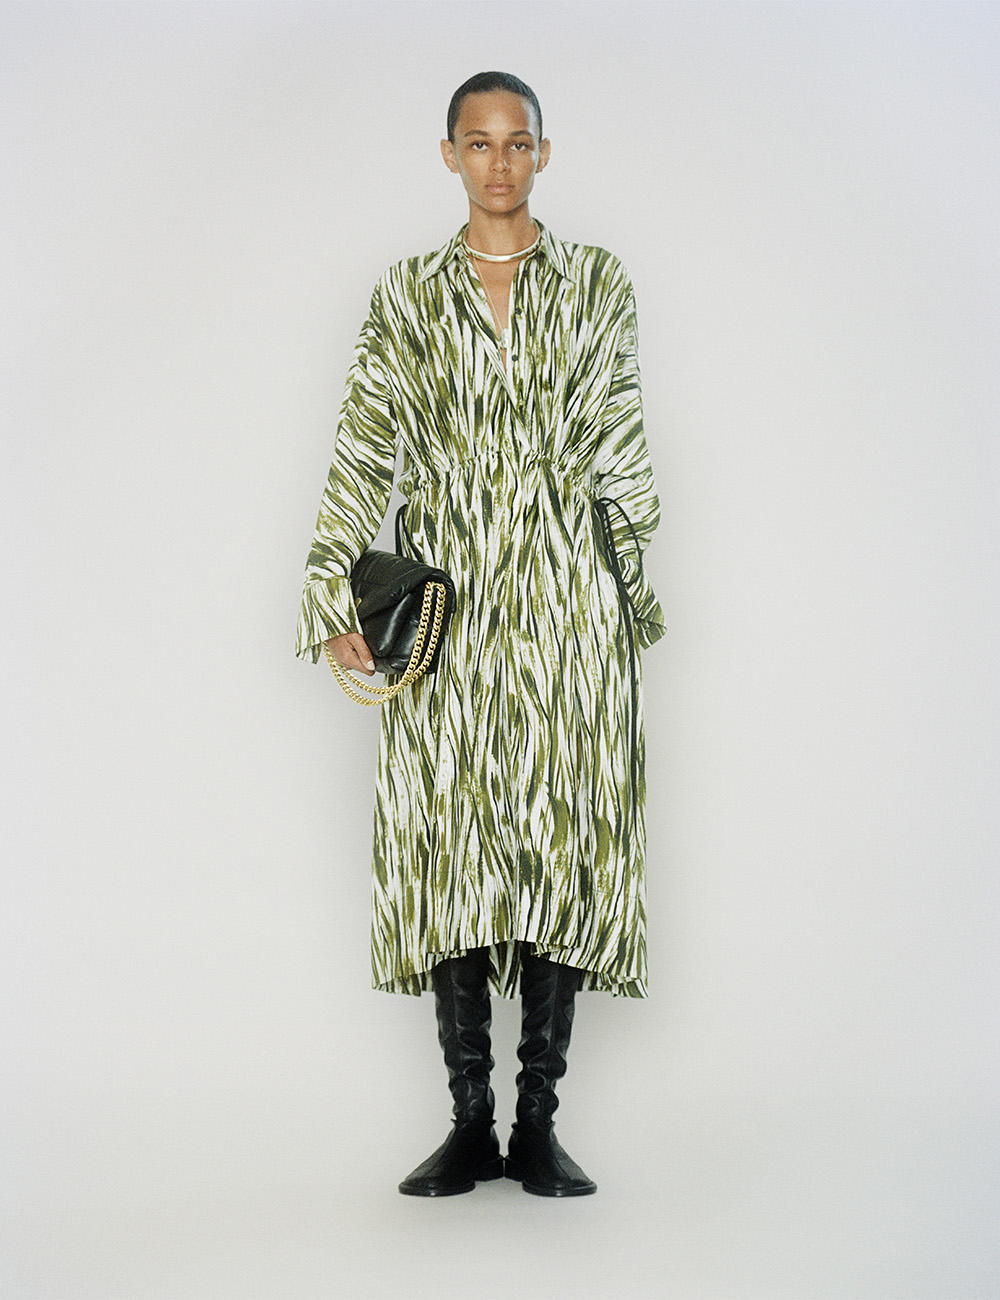 SS21 Look 25: Green and White print dress